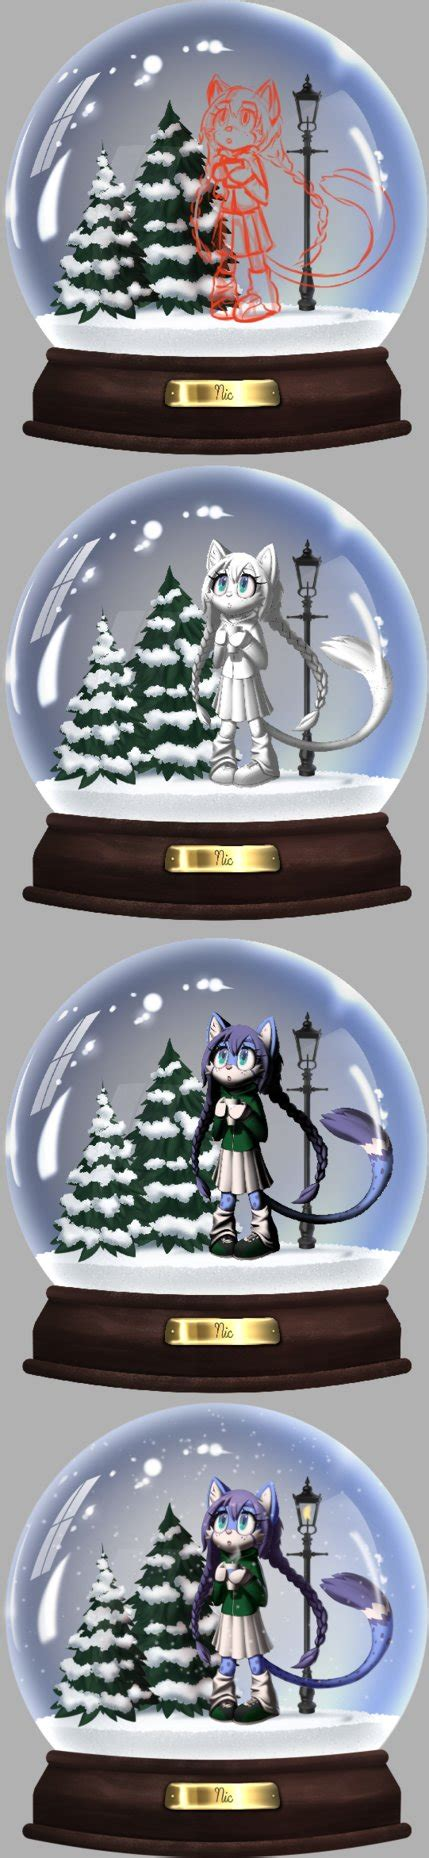 process of manufacturing snow globe snow globe process by v mordecai on deviantart